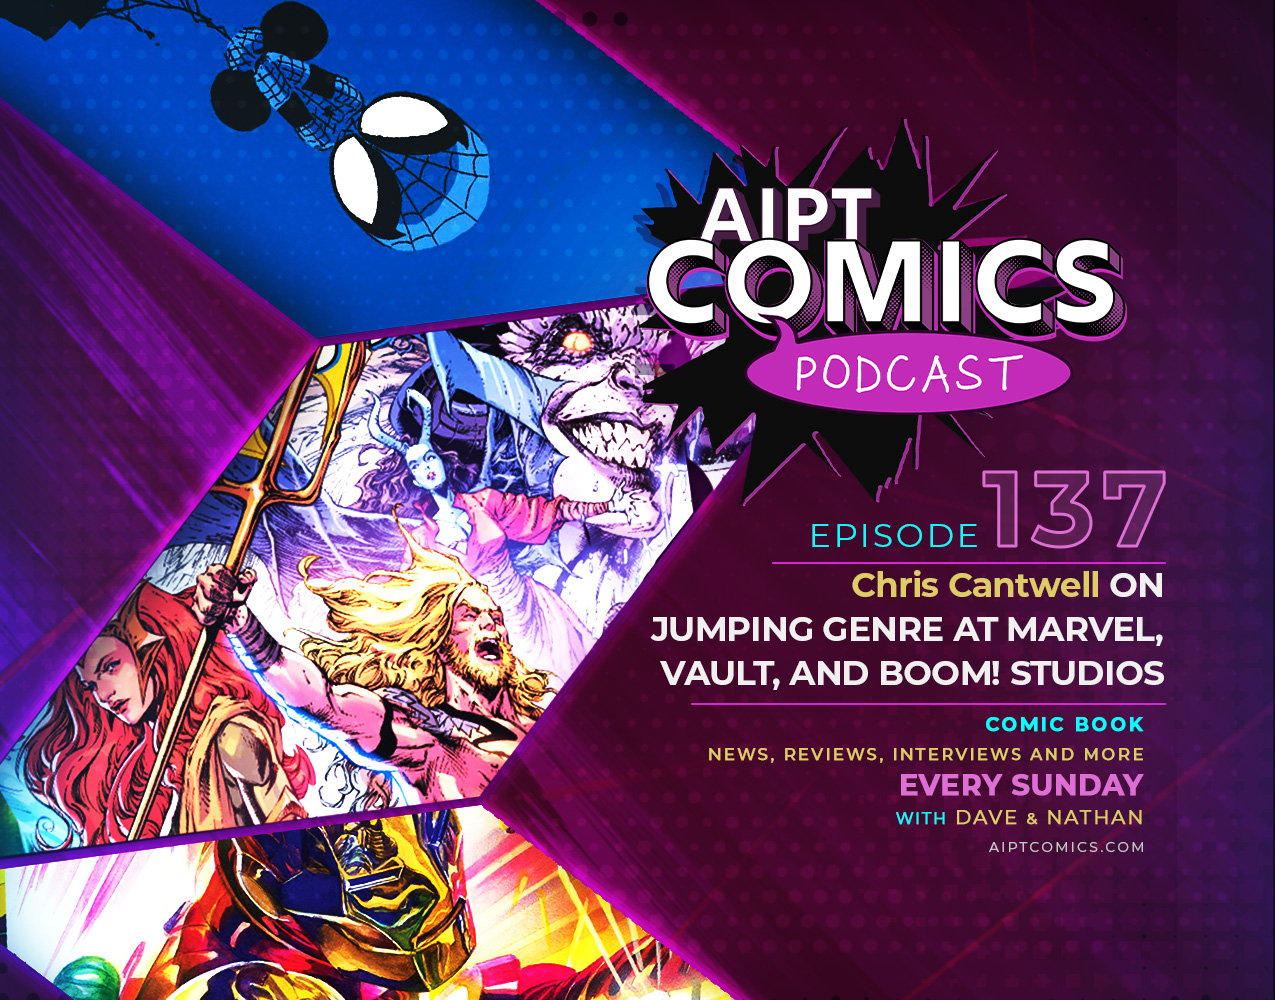 AIPT Comics podcast episode 137: Chris Cantwell on jumping genre at Marvel, Vault, and BOOM!